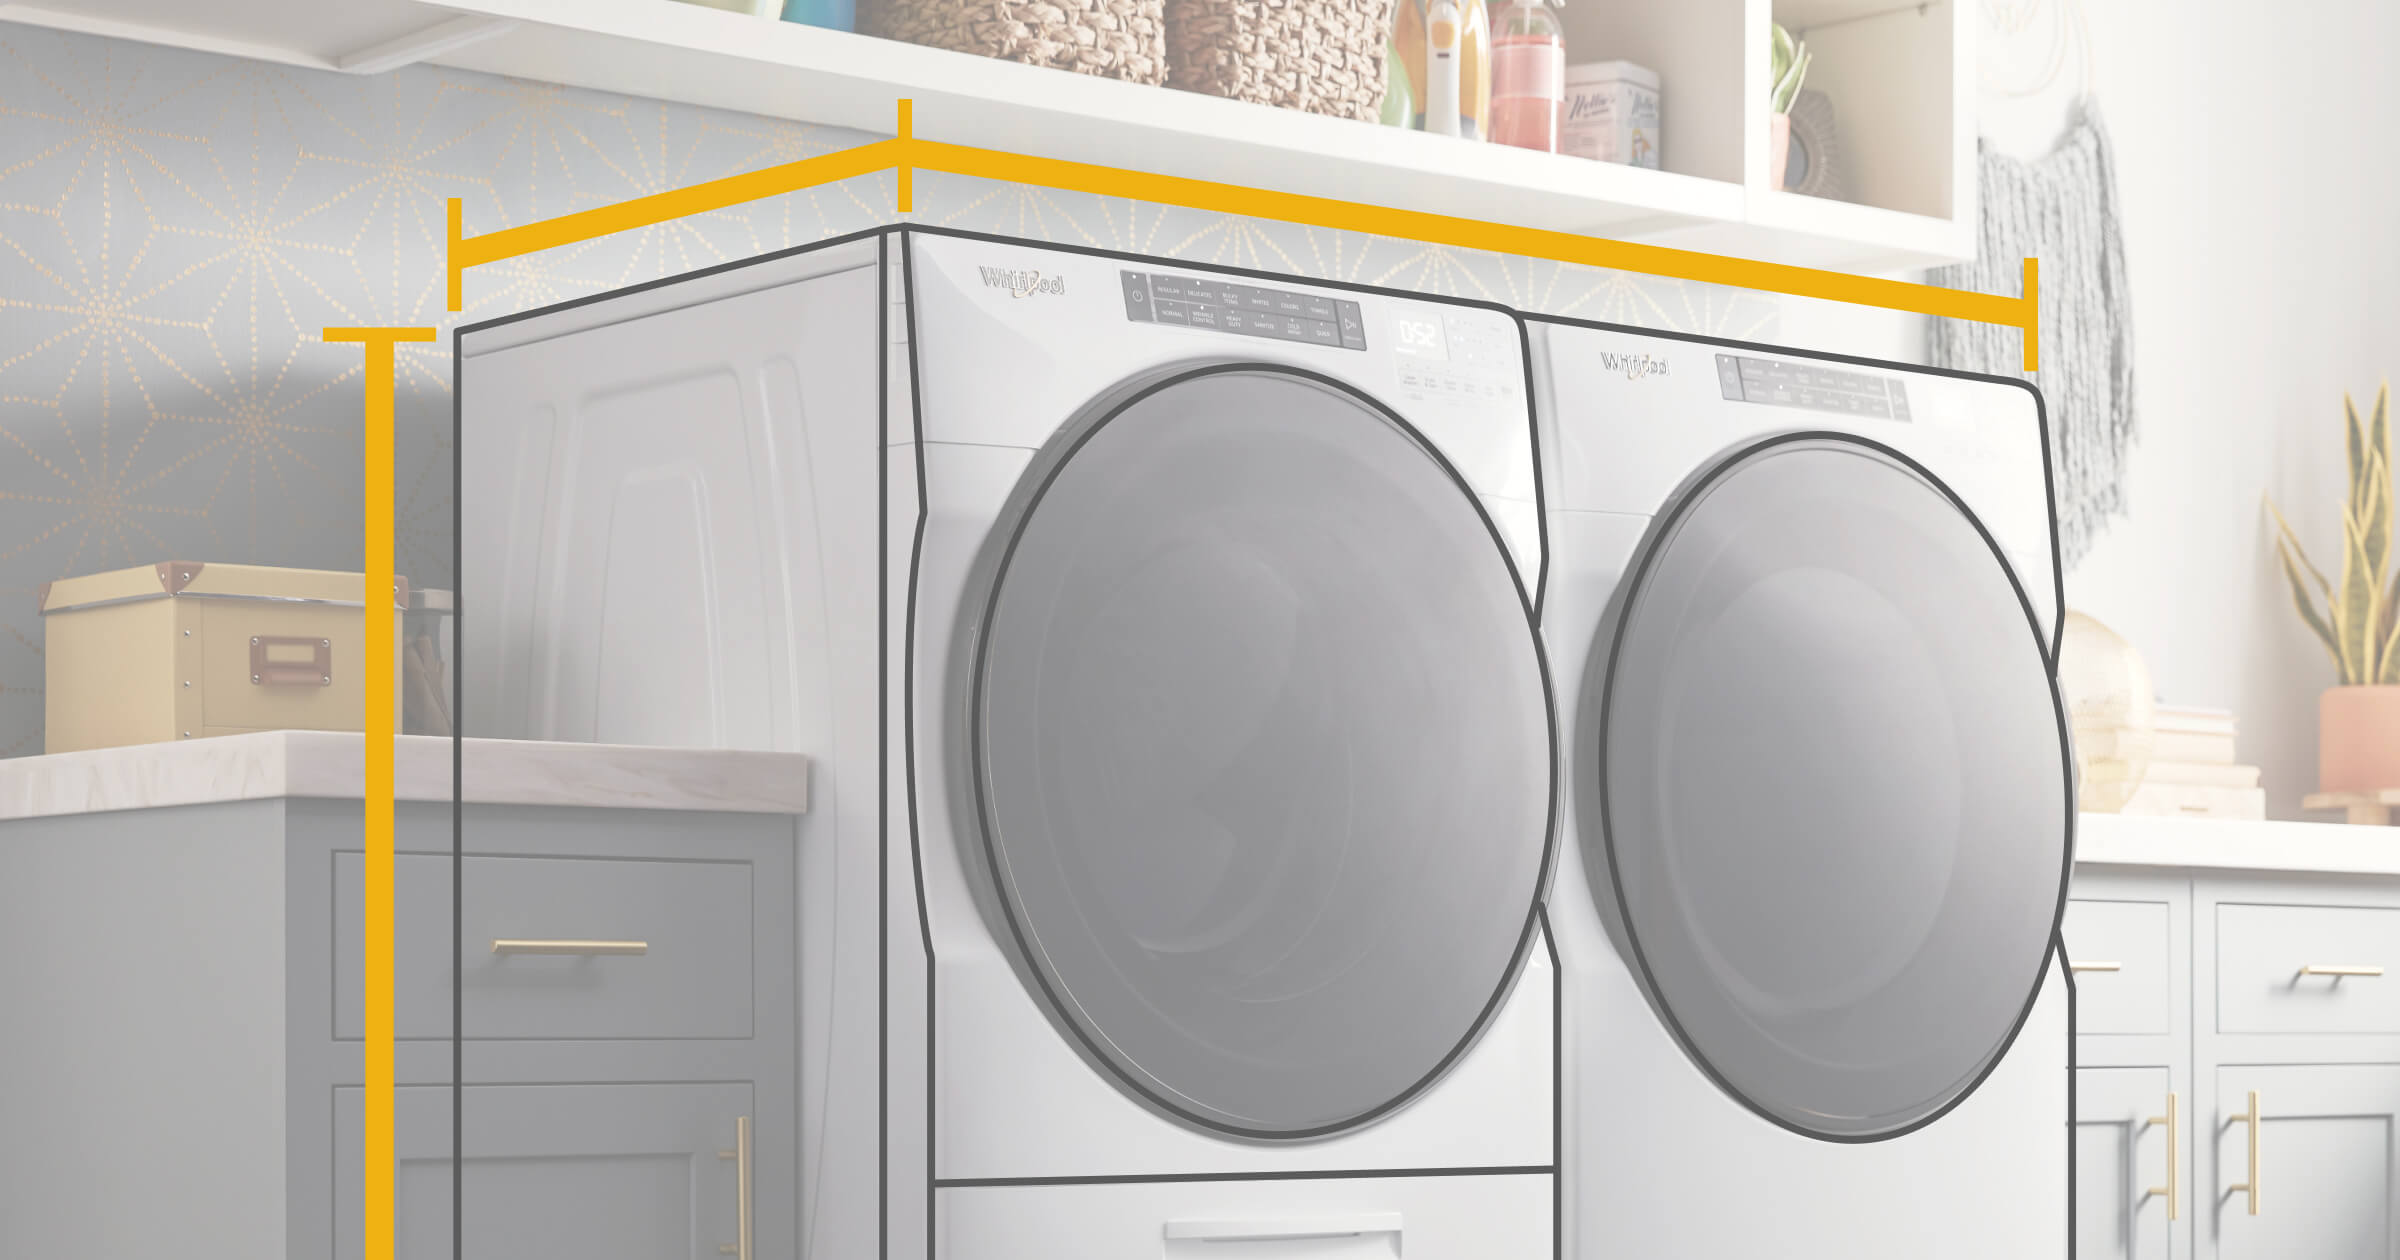 3 Steps To Find The Right Washer And Dryer Dimensions Whirlpool